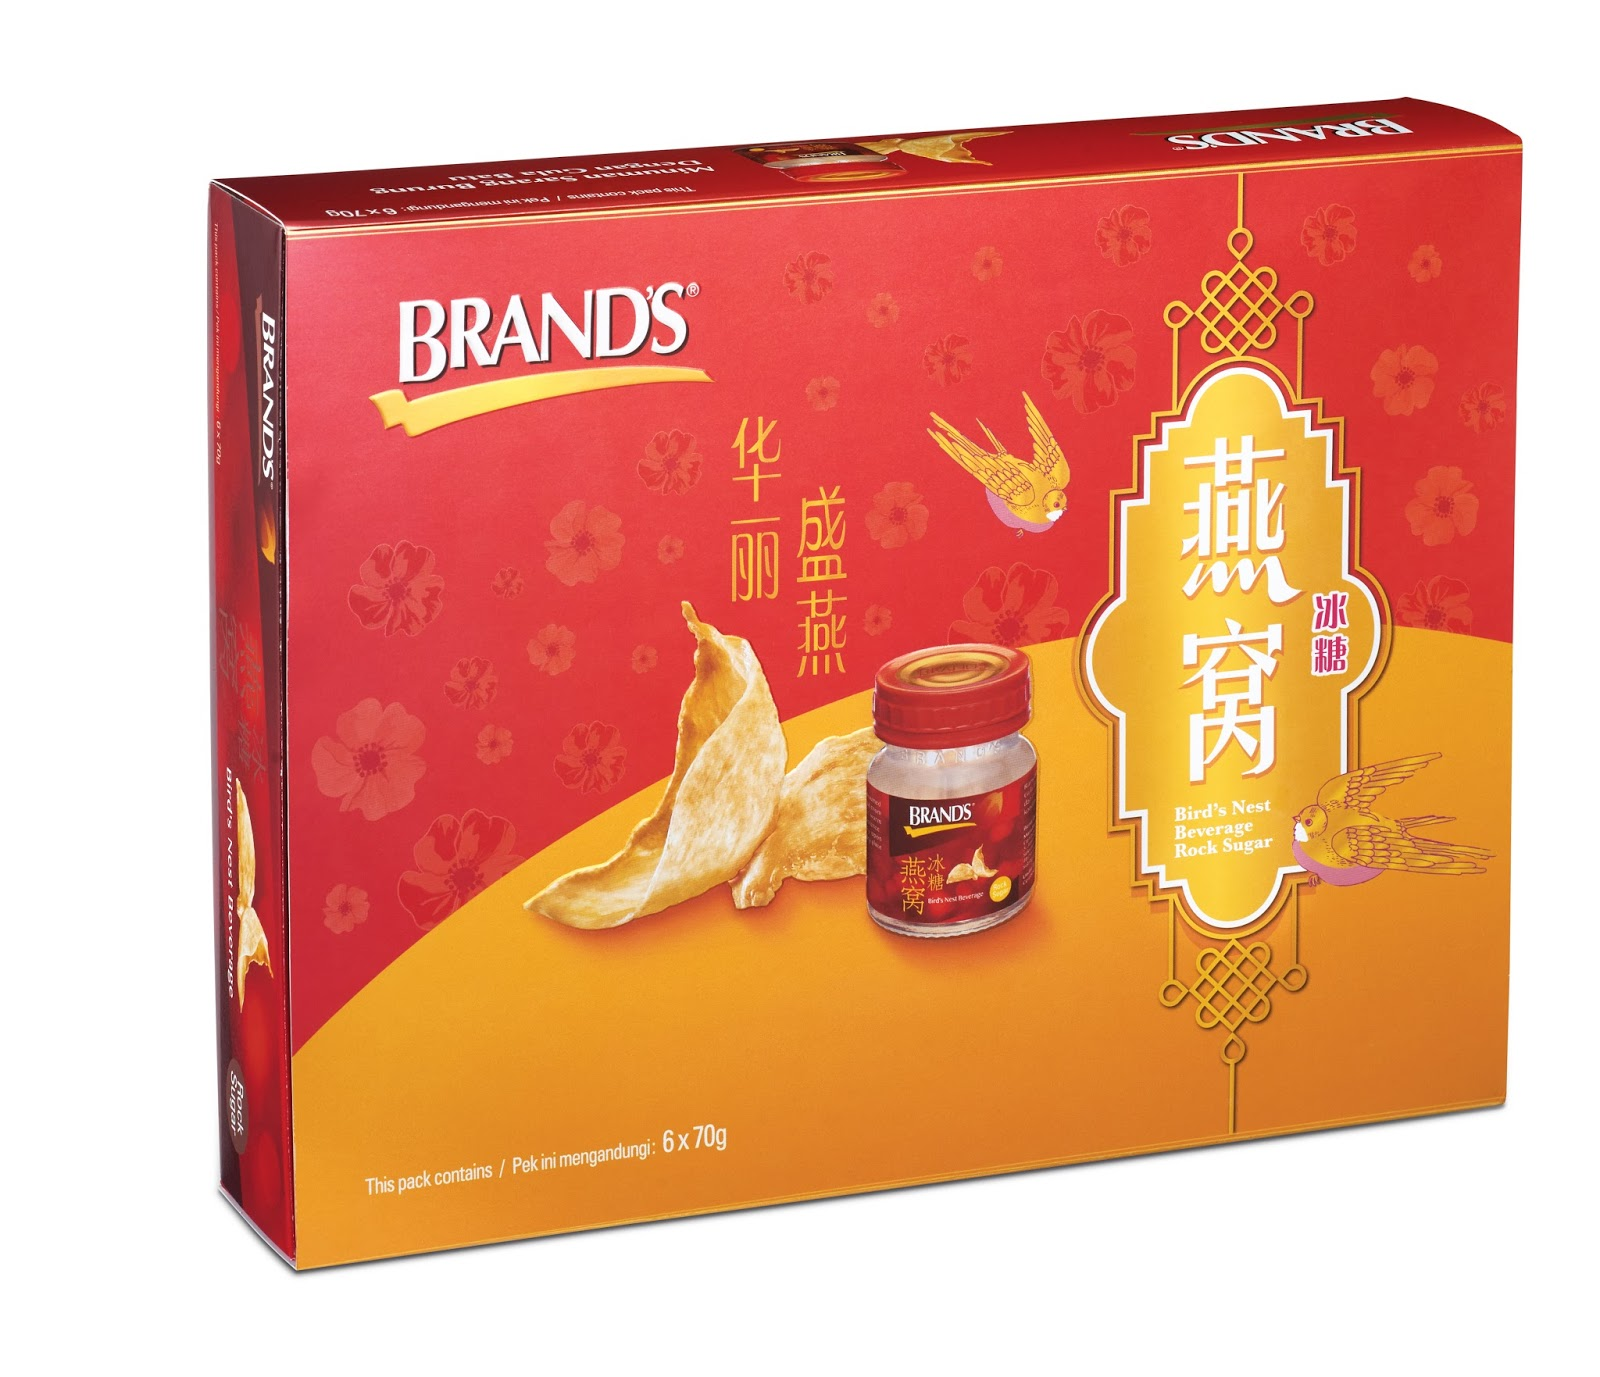 BRANDS Attractive 2017 Chinese New Year Range Imperial